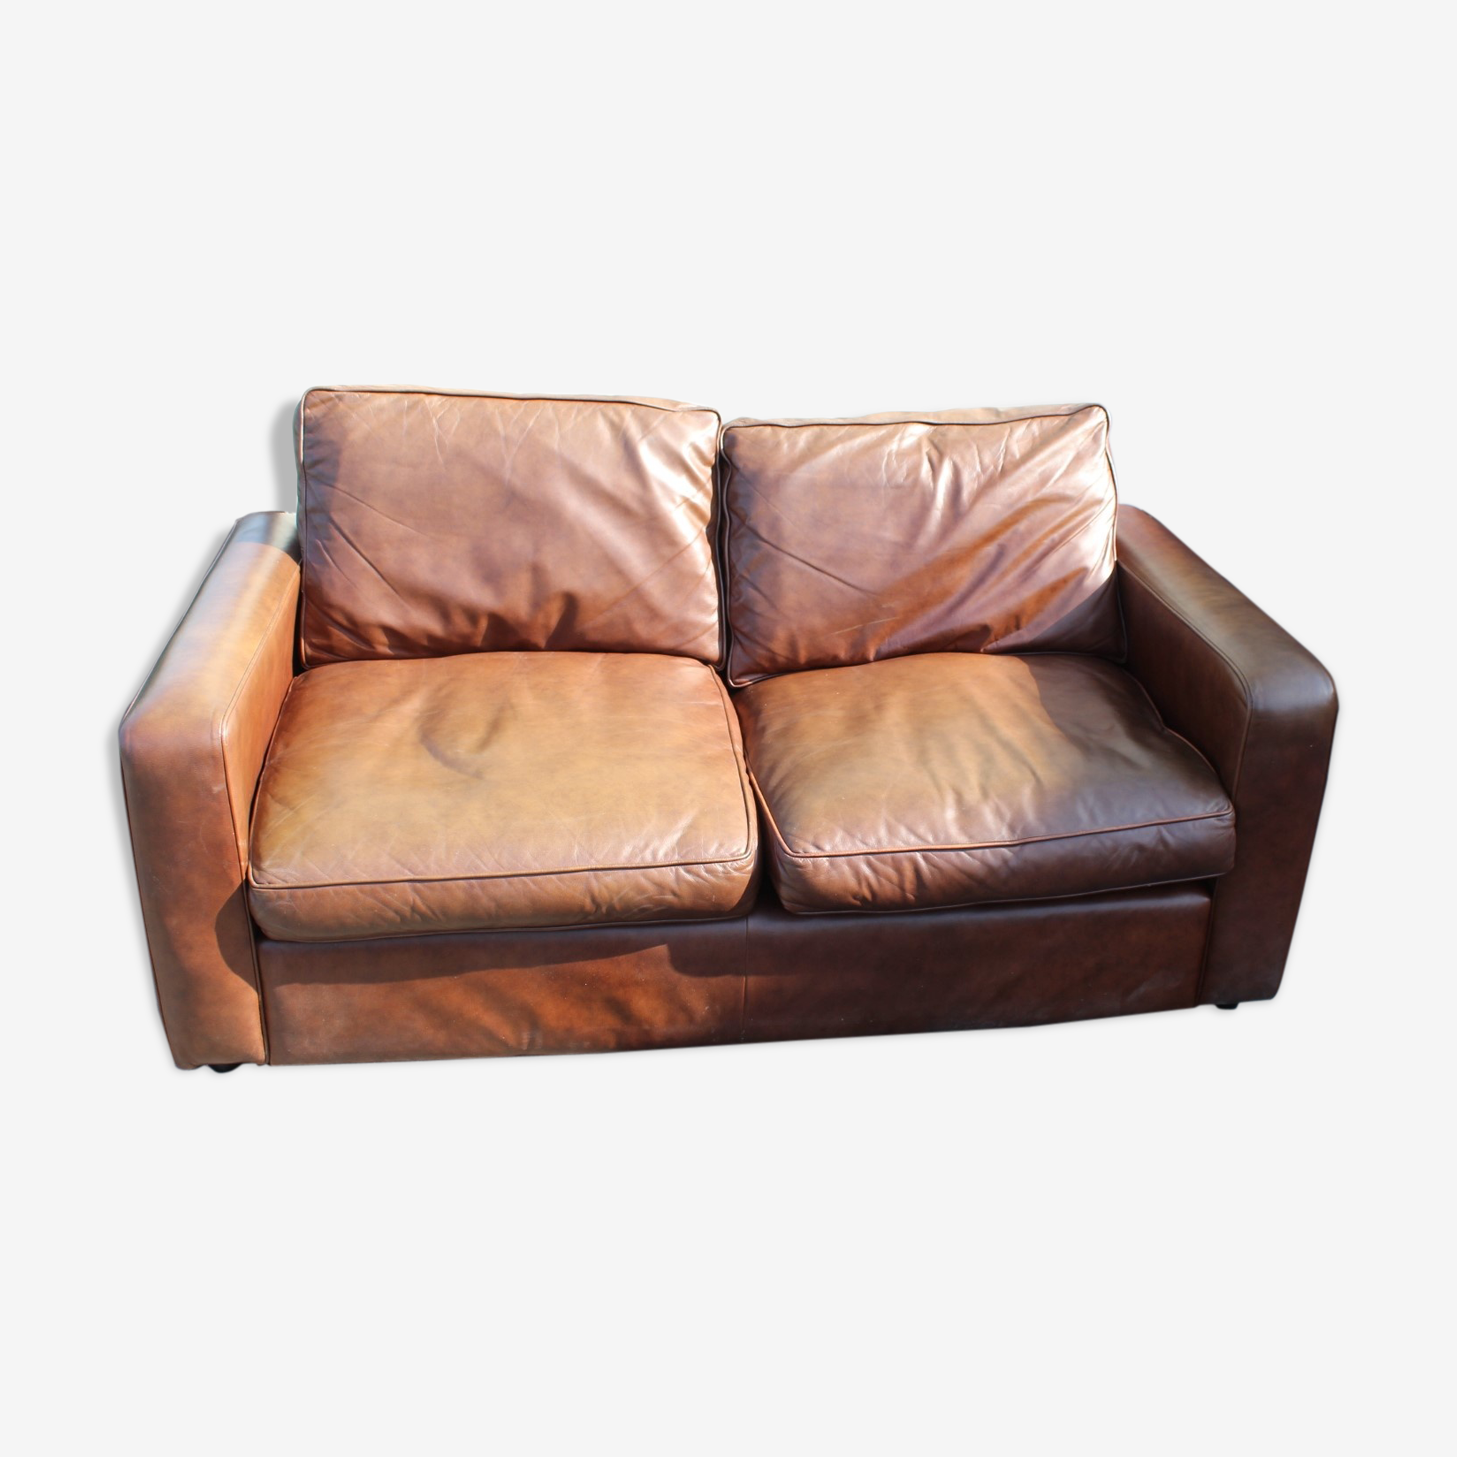 Two seater light brown sofa